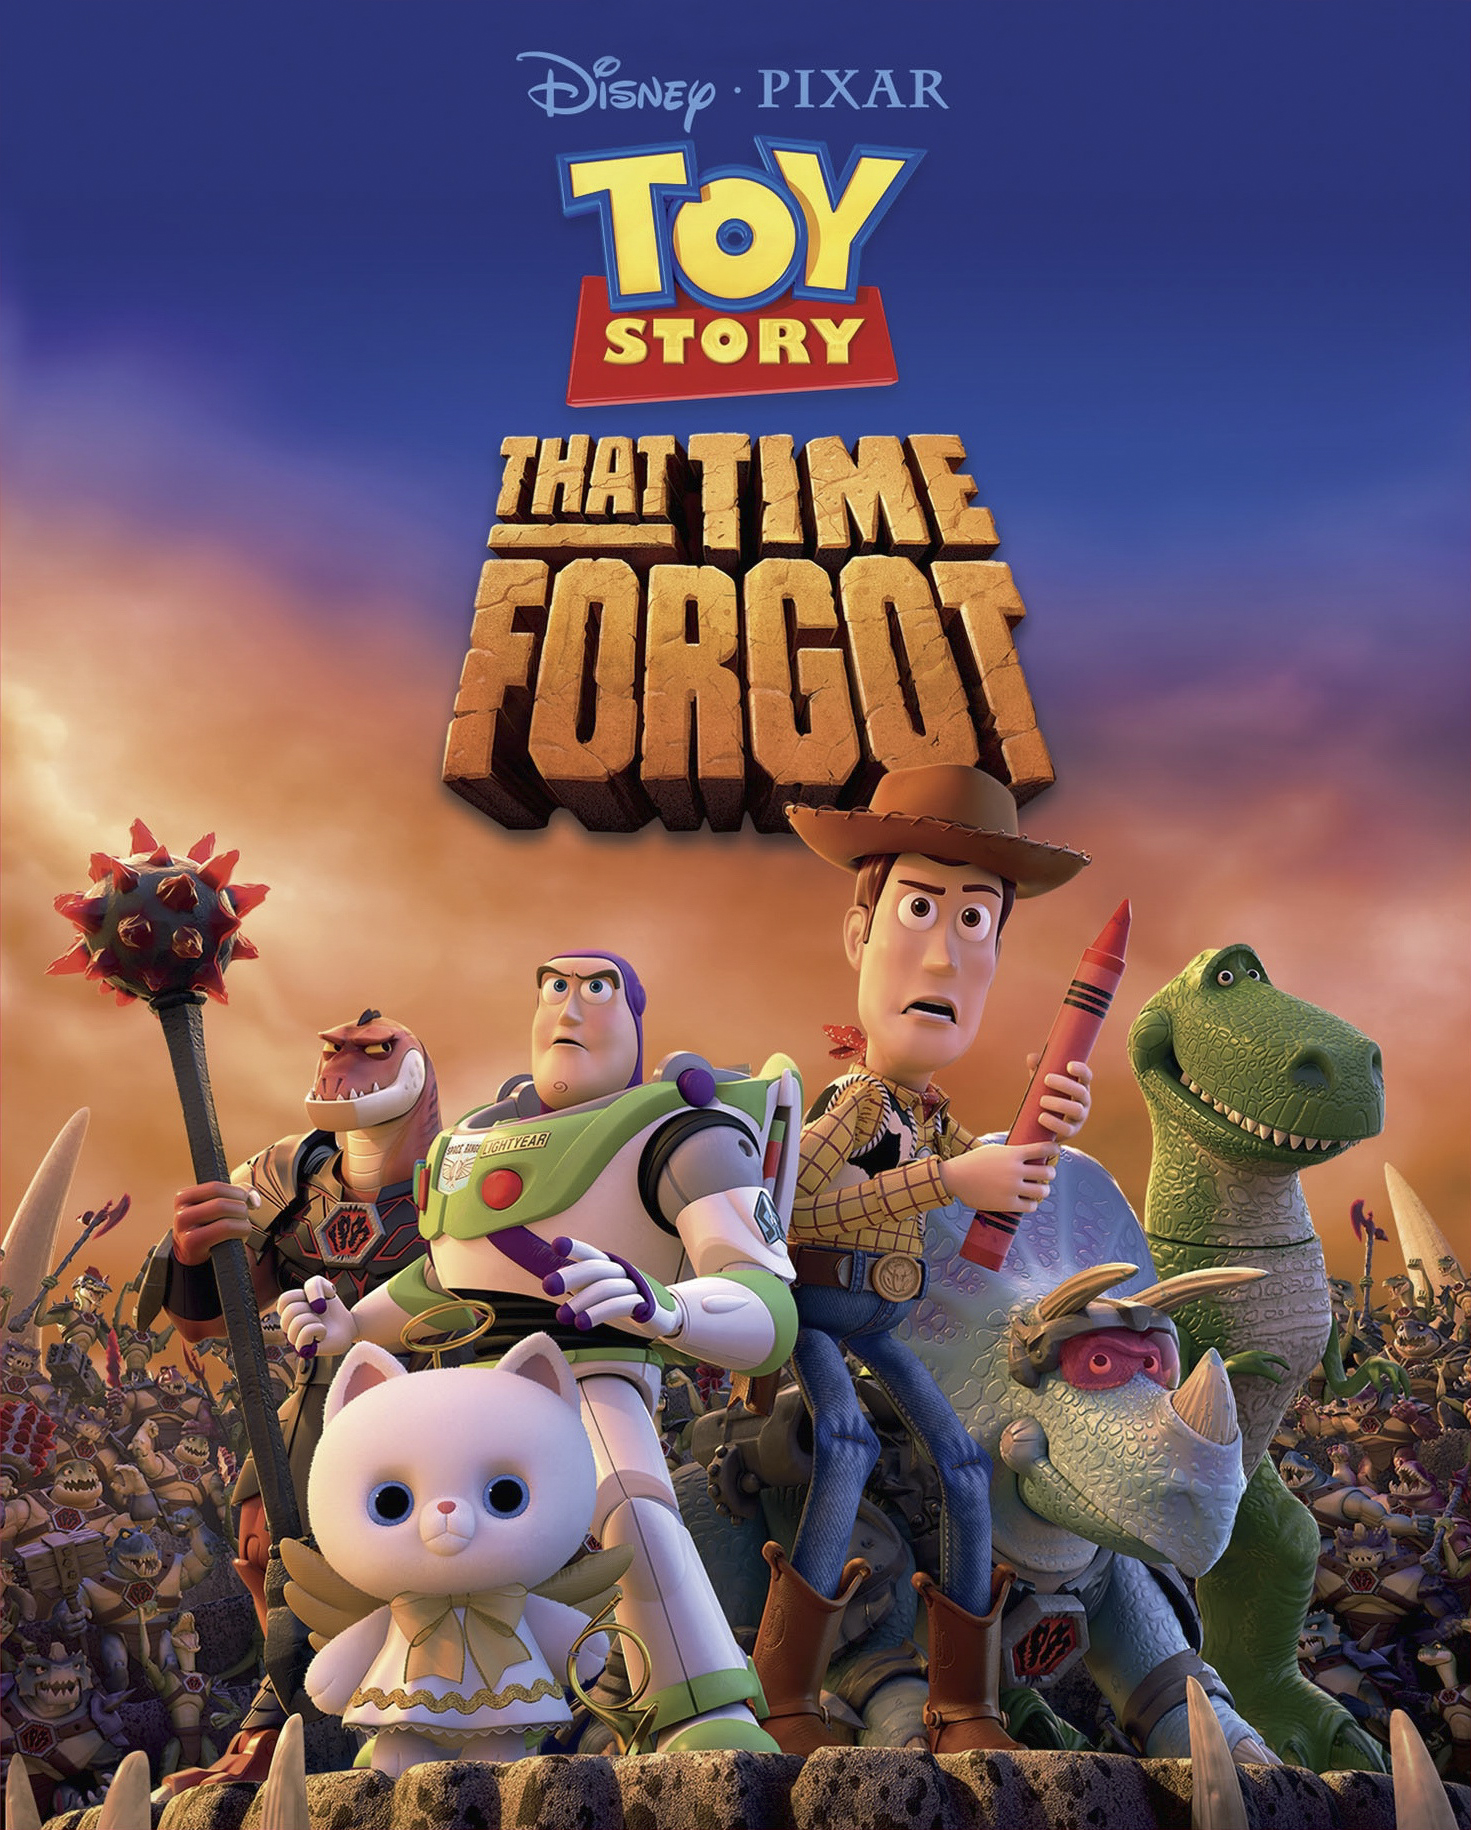 ToyStoryThatTimeForgot.jpg